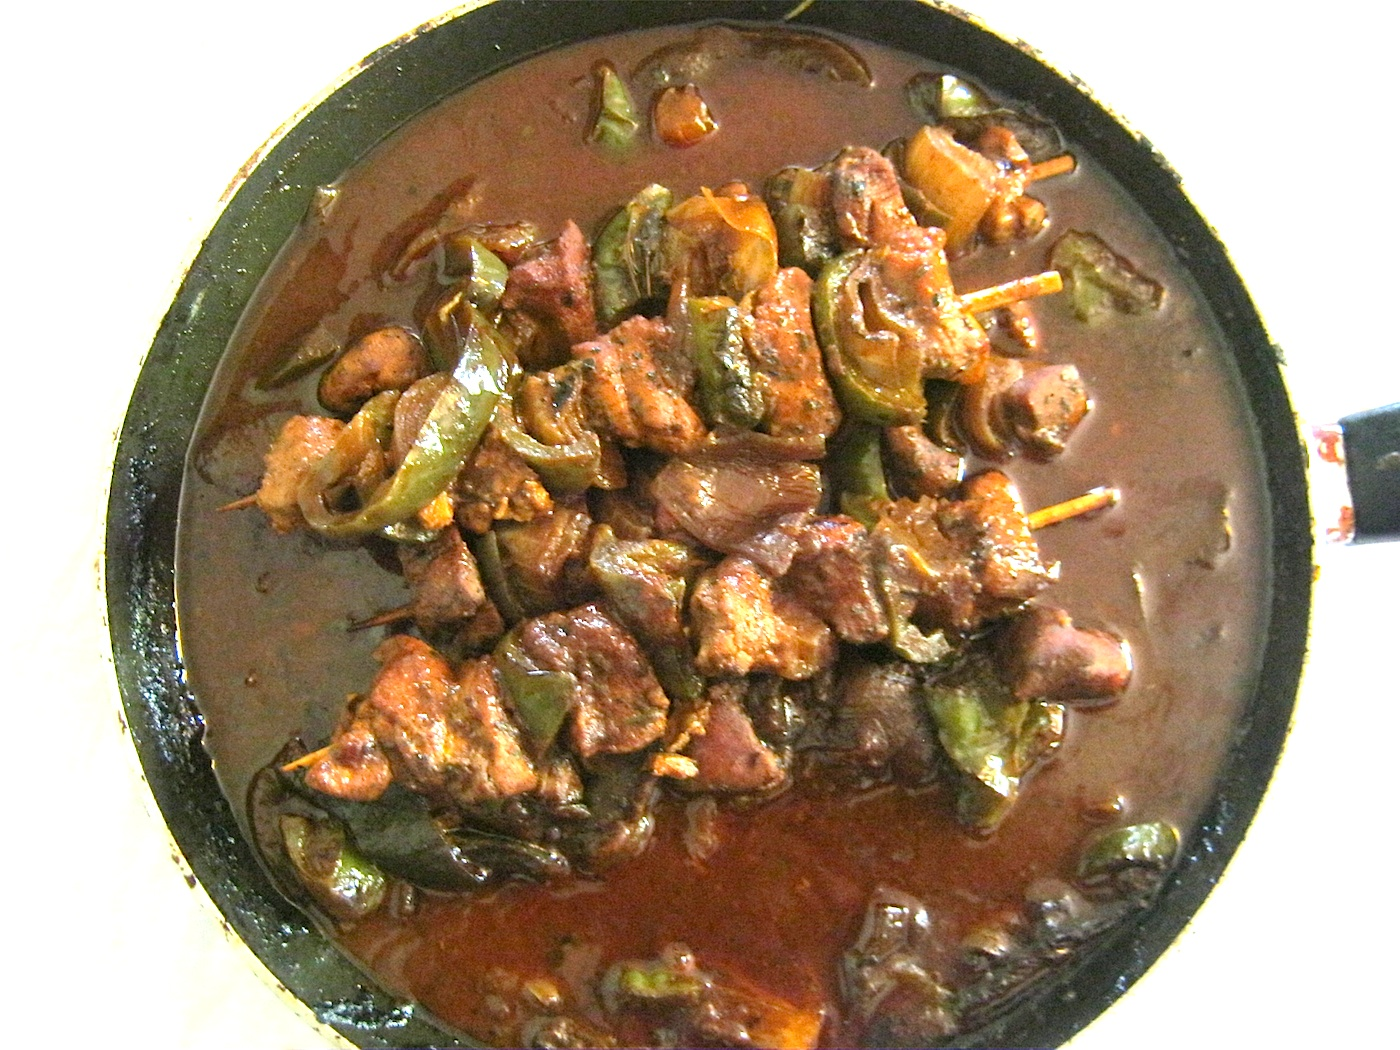 Shashlik with sauce in a pan